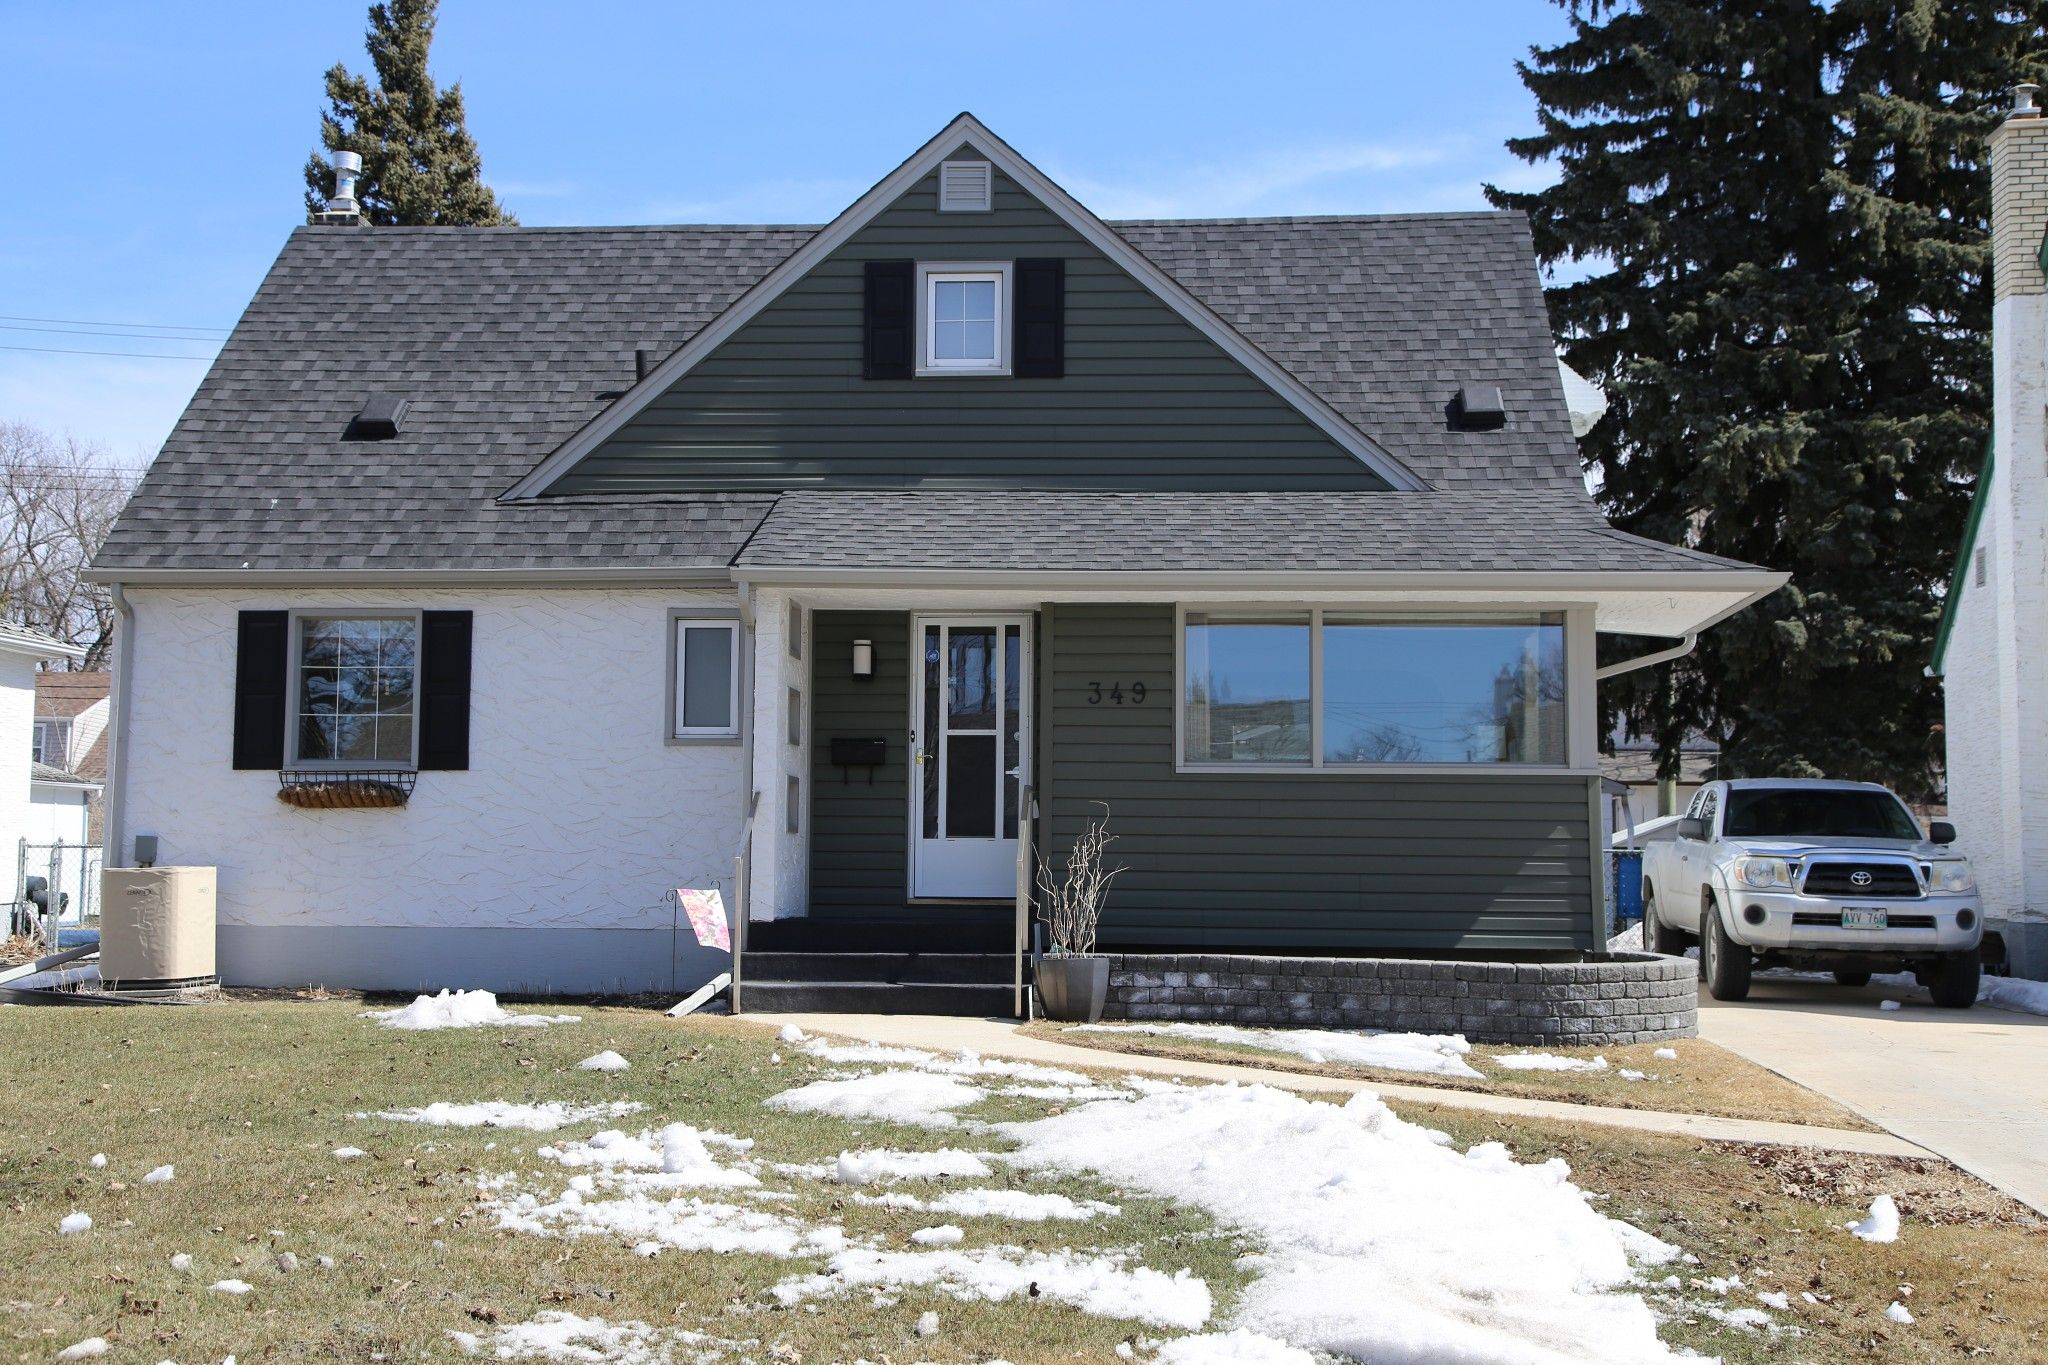 Photo 2: Photos: 349 Guildford Street in Winnipeg: St James Single Family Detached for sale (5E)  : MLS®# 1807654